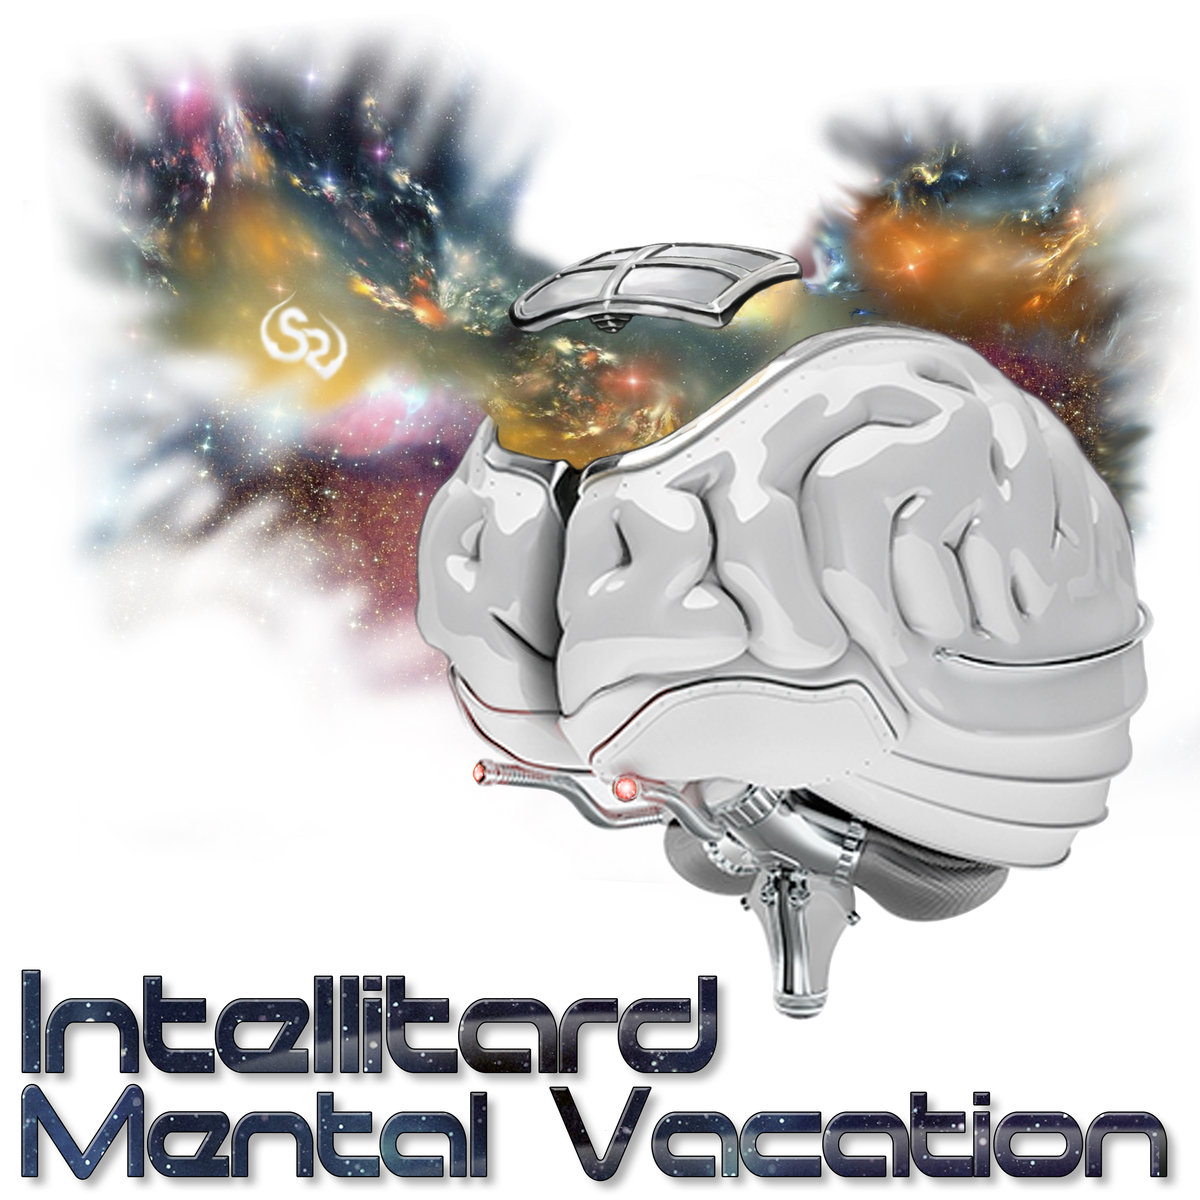 Intellitard - Feel Better @ 'Mental Vacation' album (808, bass)